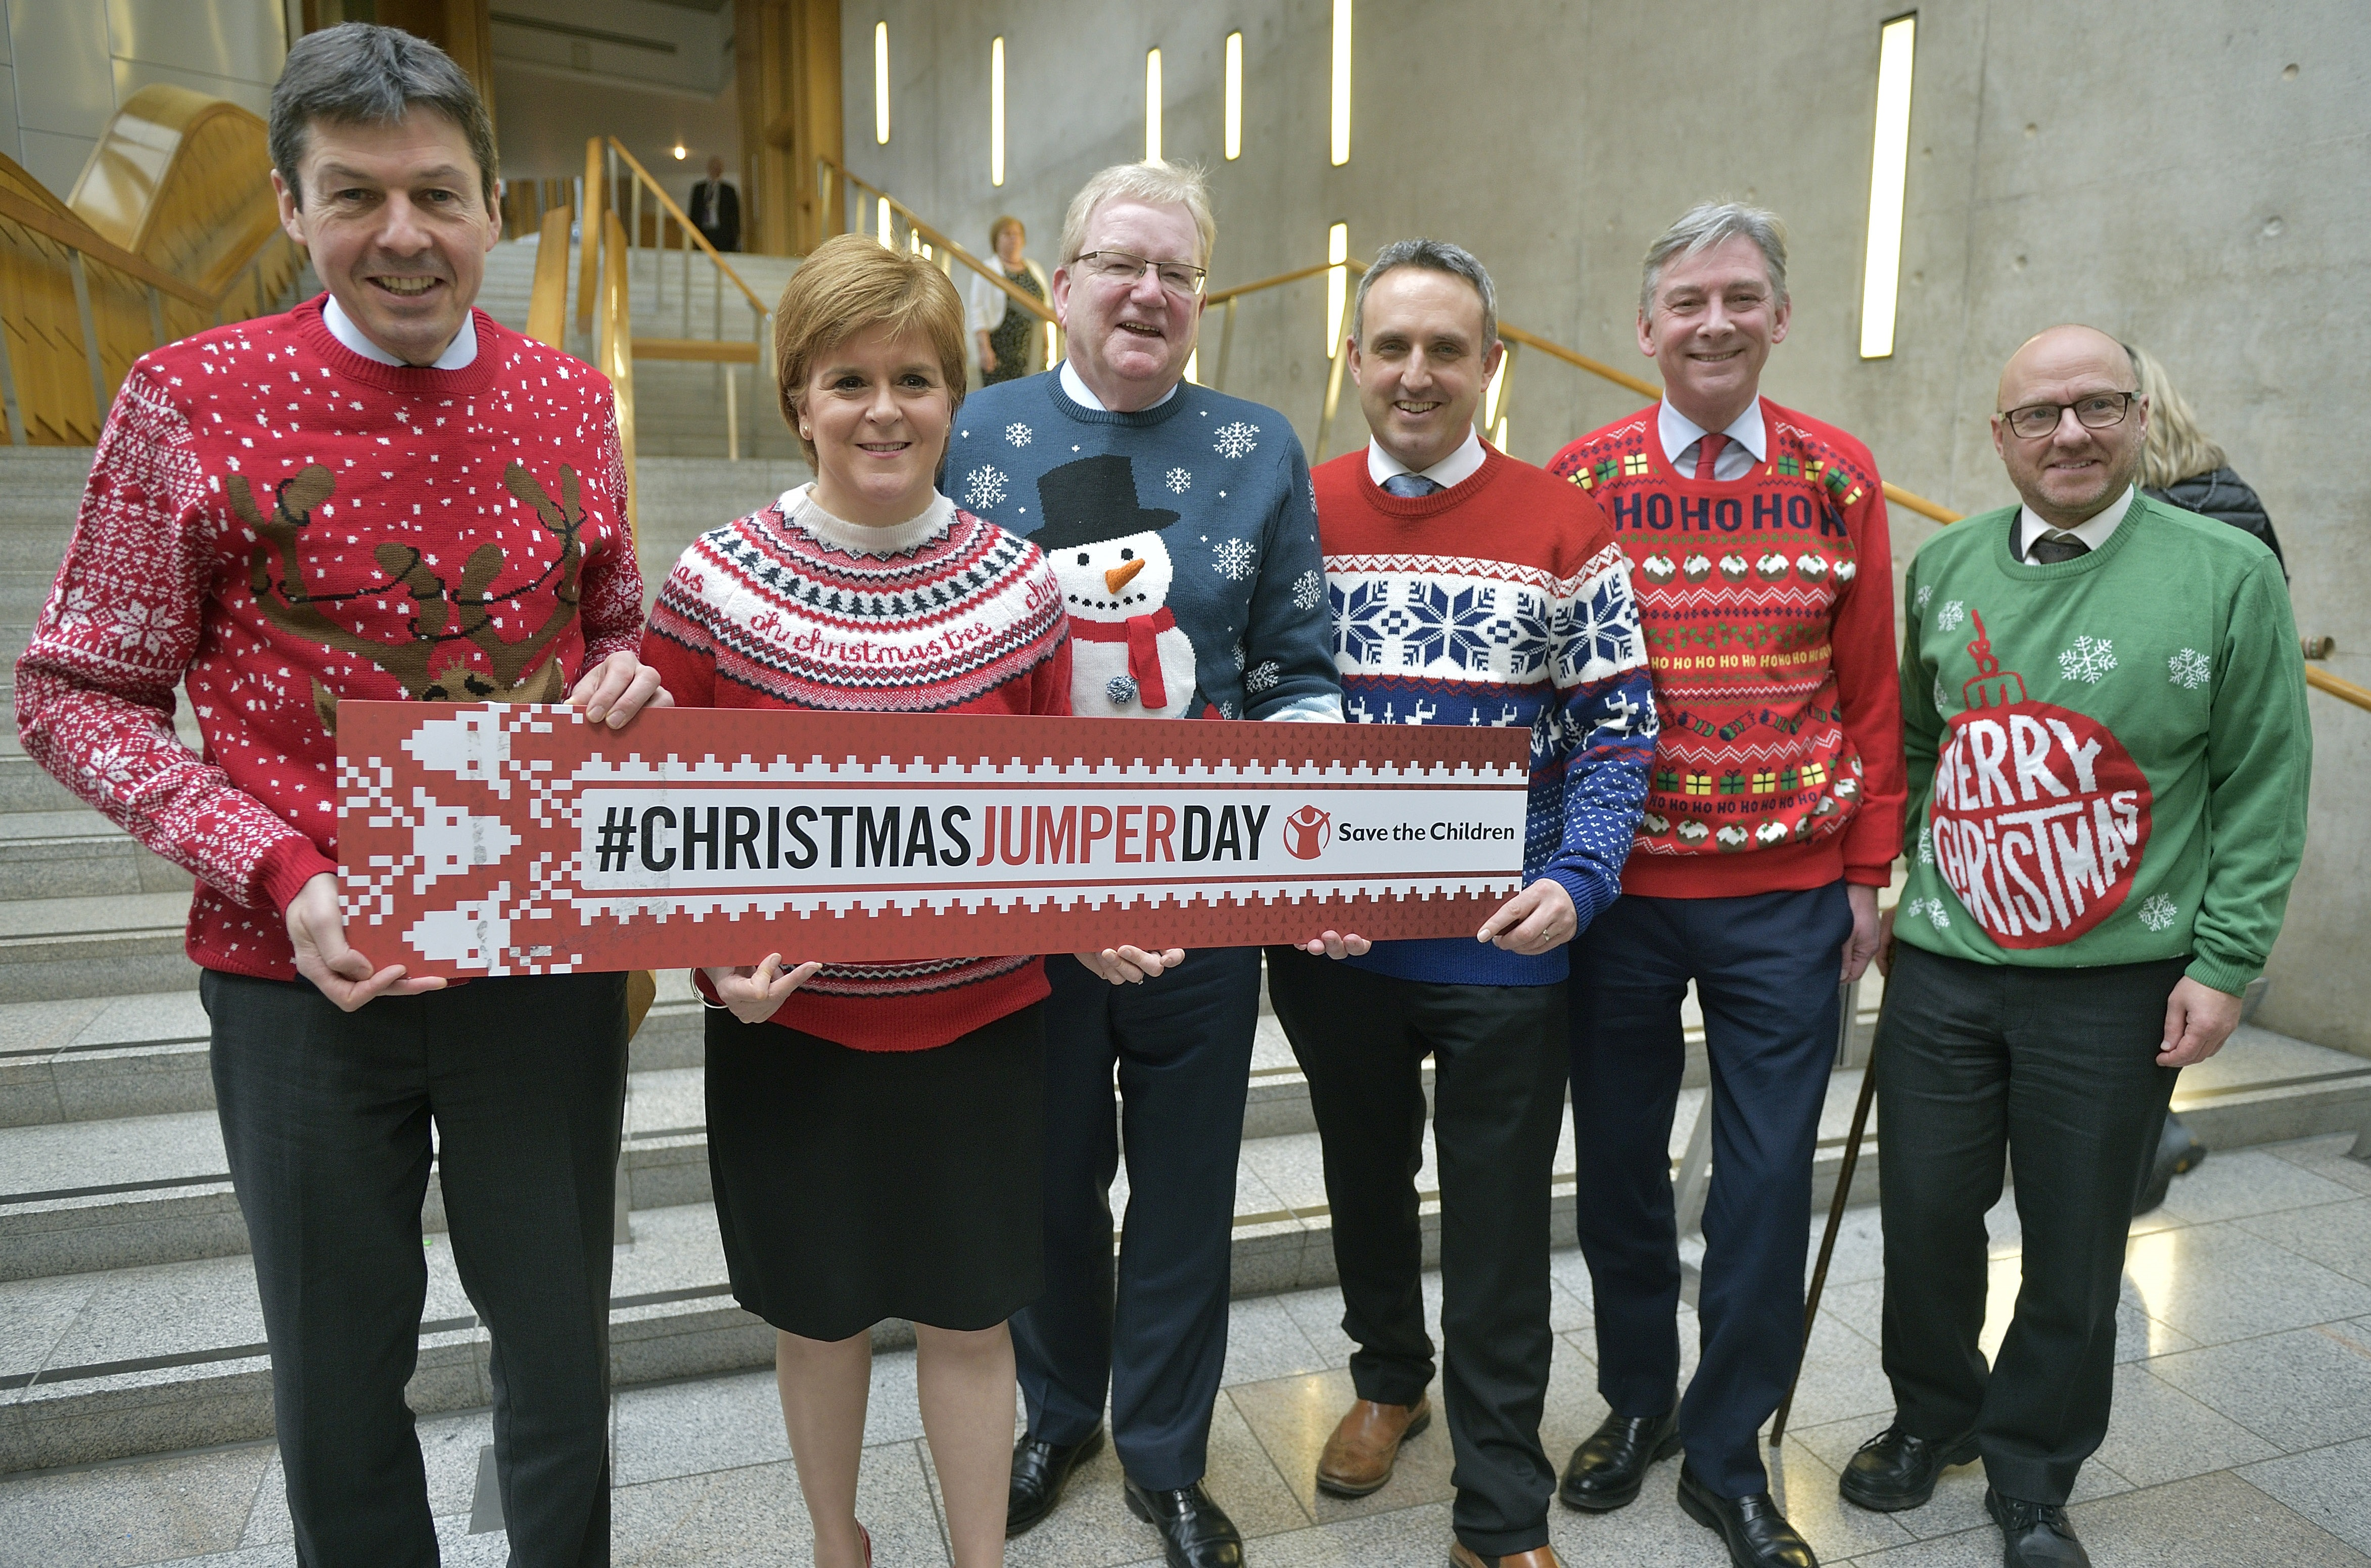 Party leaders back Christmas Jumper Day